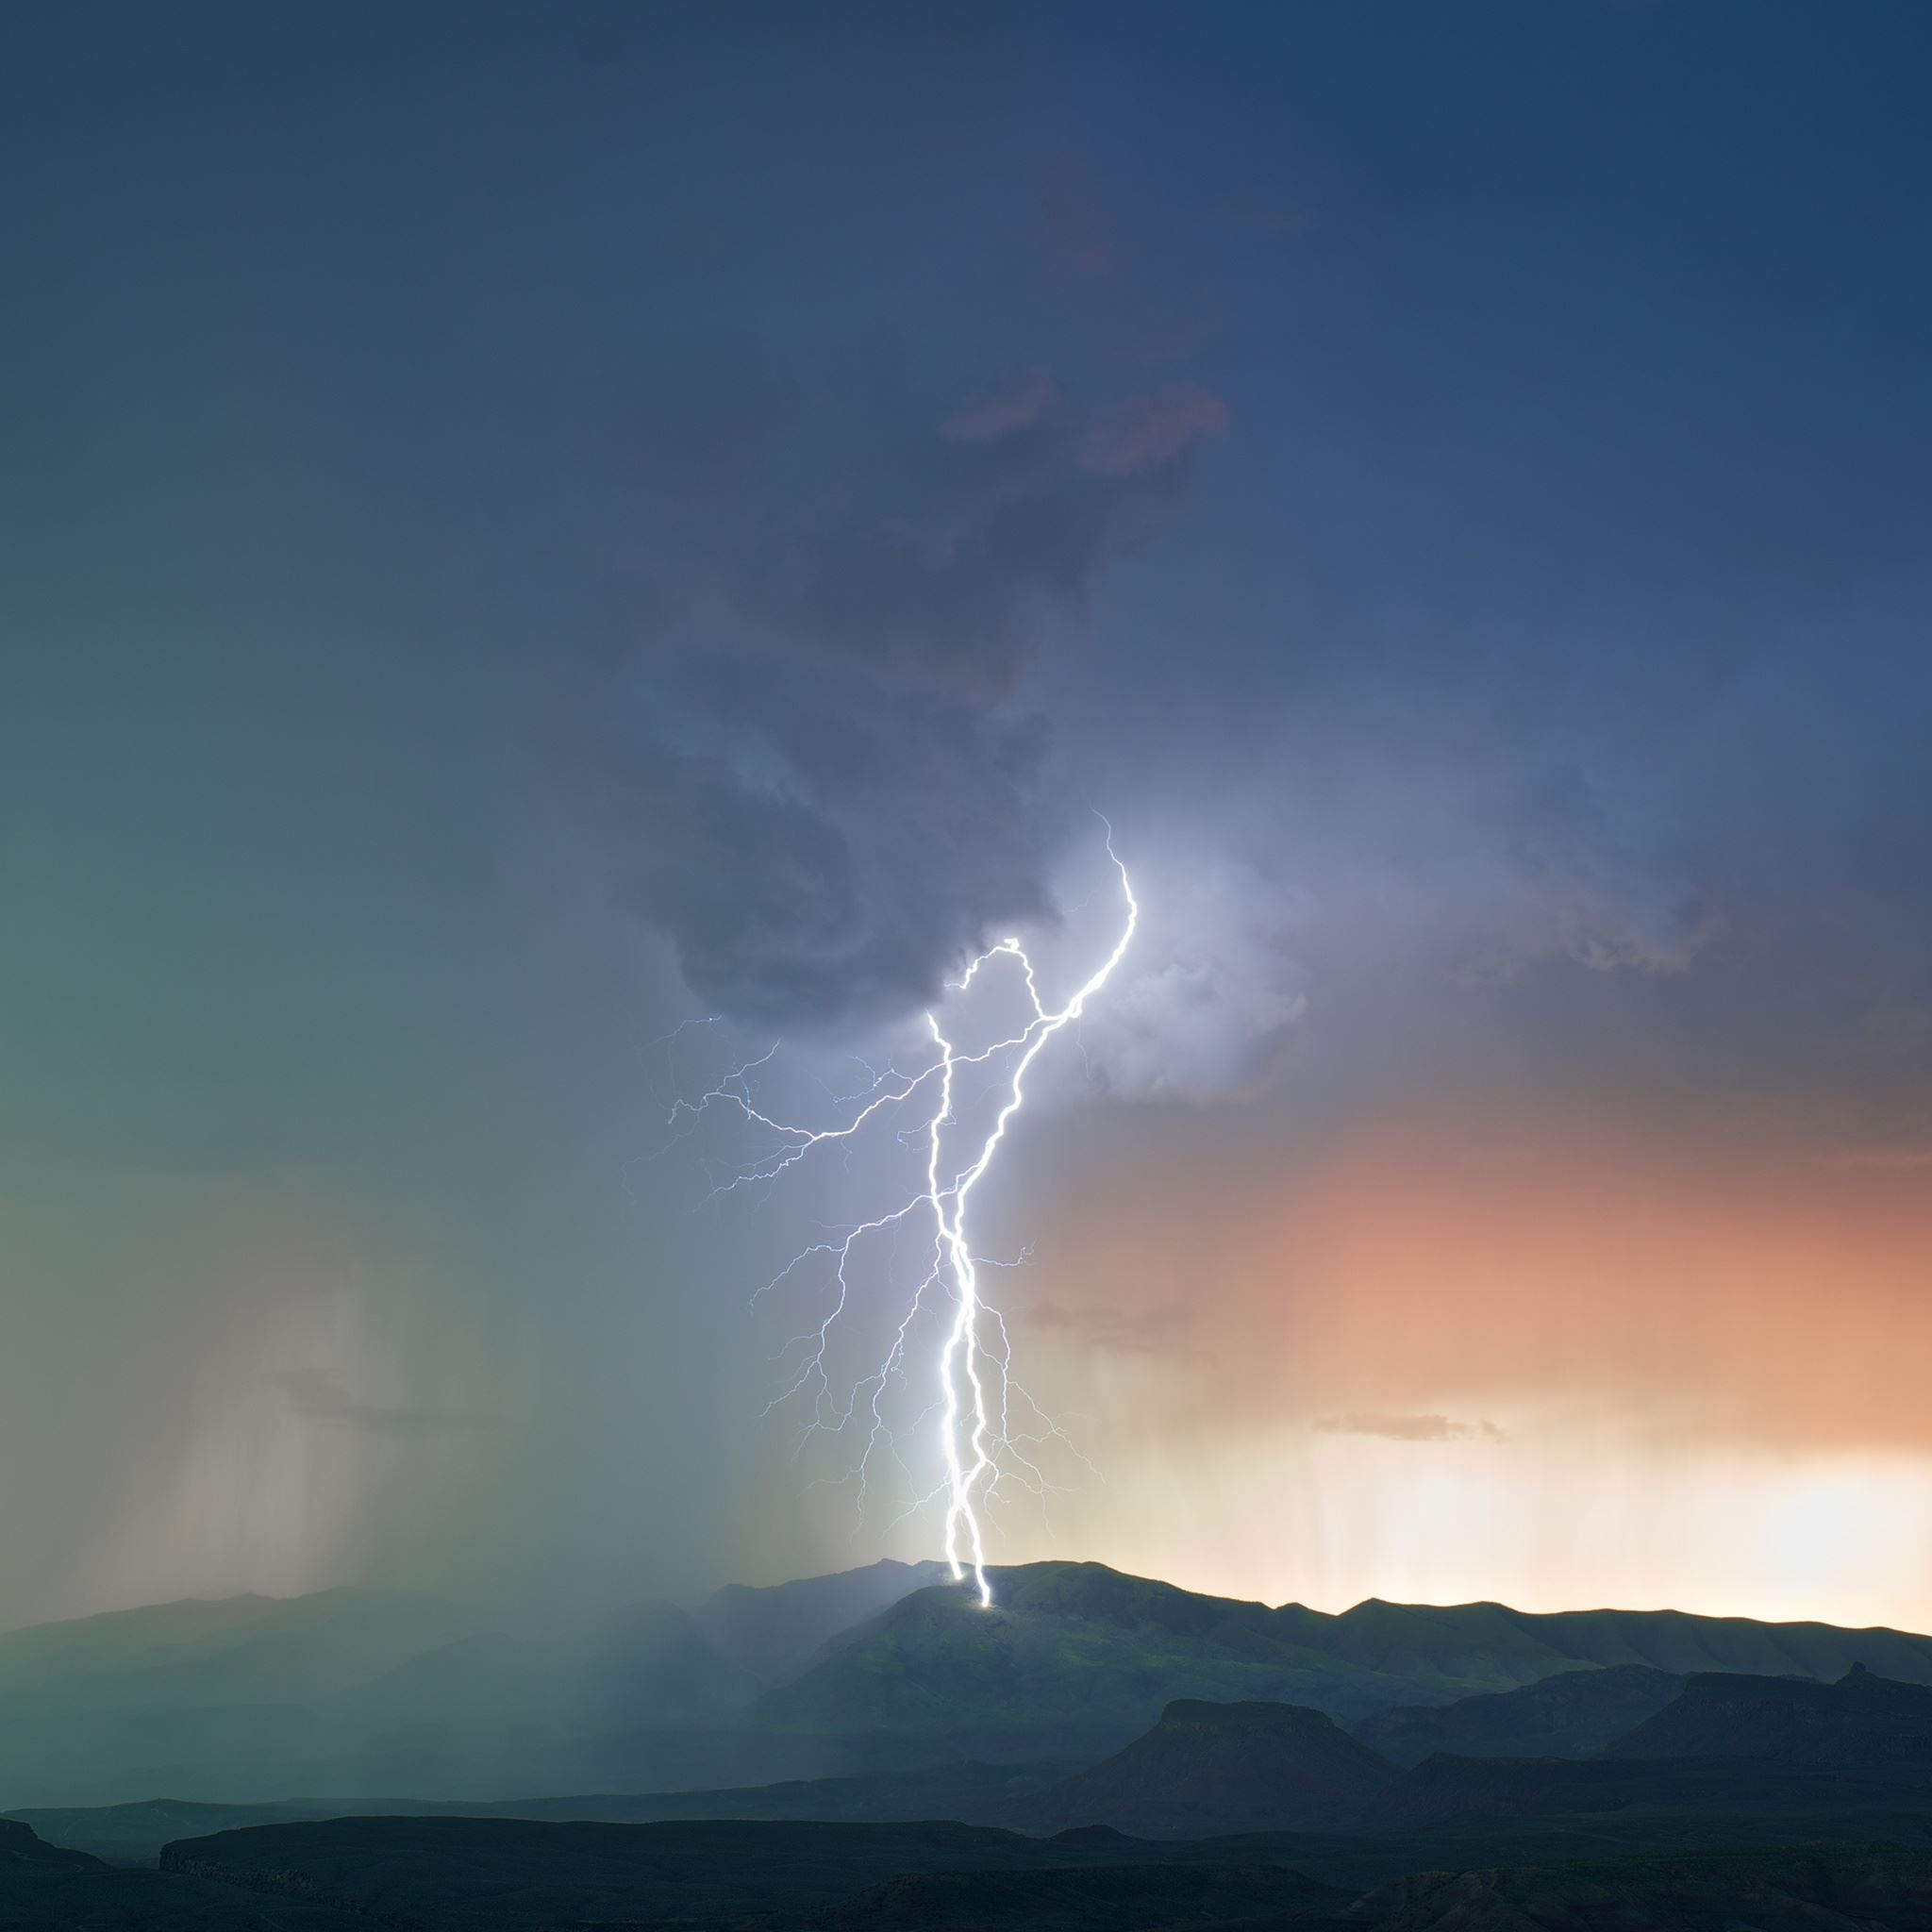 Mountain Struck By Lightning Ipad Air Wallpapers Free Download